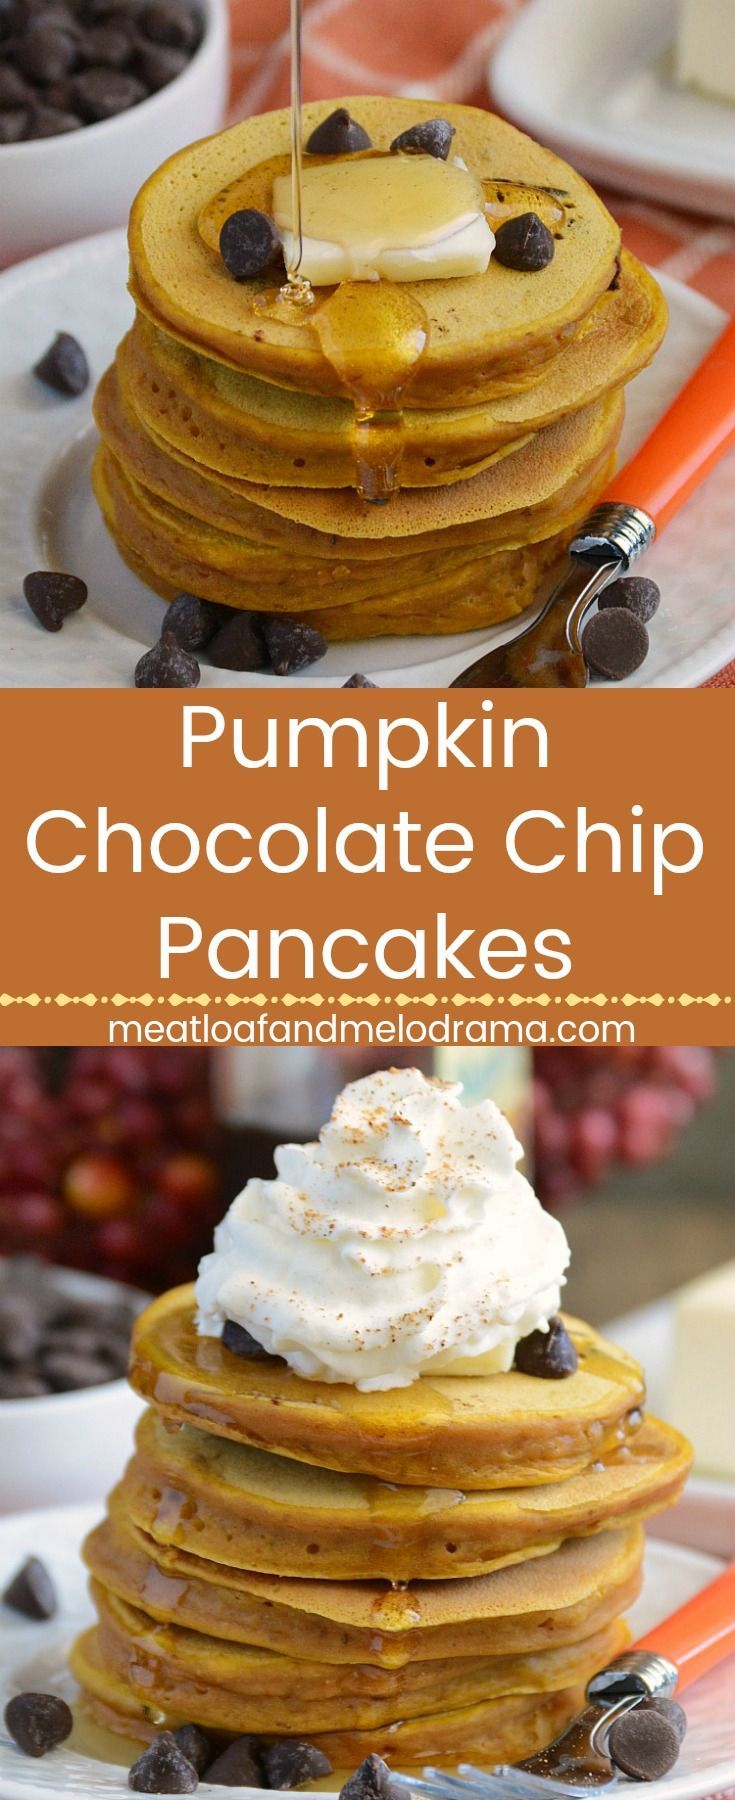 Pumpkin Chocolate Chip Pancakes -  Thick, fluffy pancakes made with canned pumpkin puree and chocolate chips. An easy fall breakfast or brunch and freezer friendly too! Make them ahead of time on the weekend and reheat during the week. Meatloaf and Melodrama